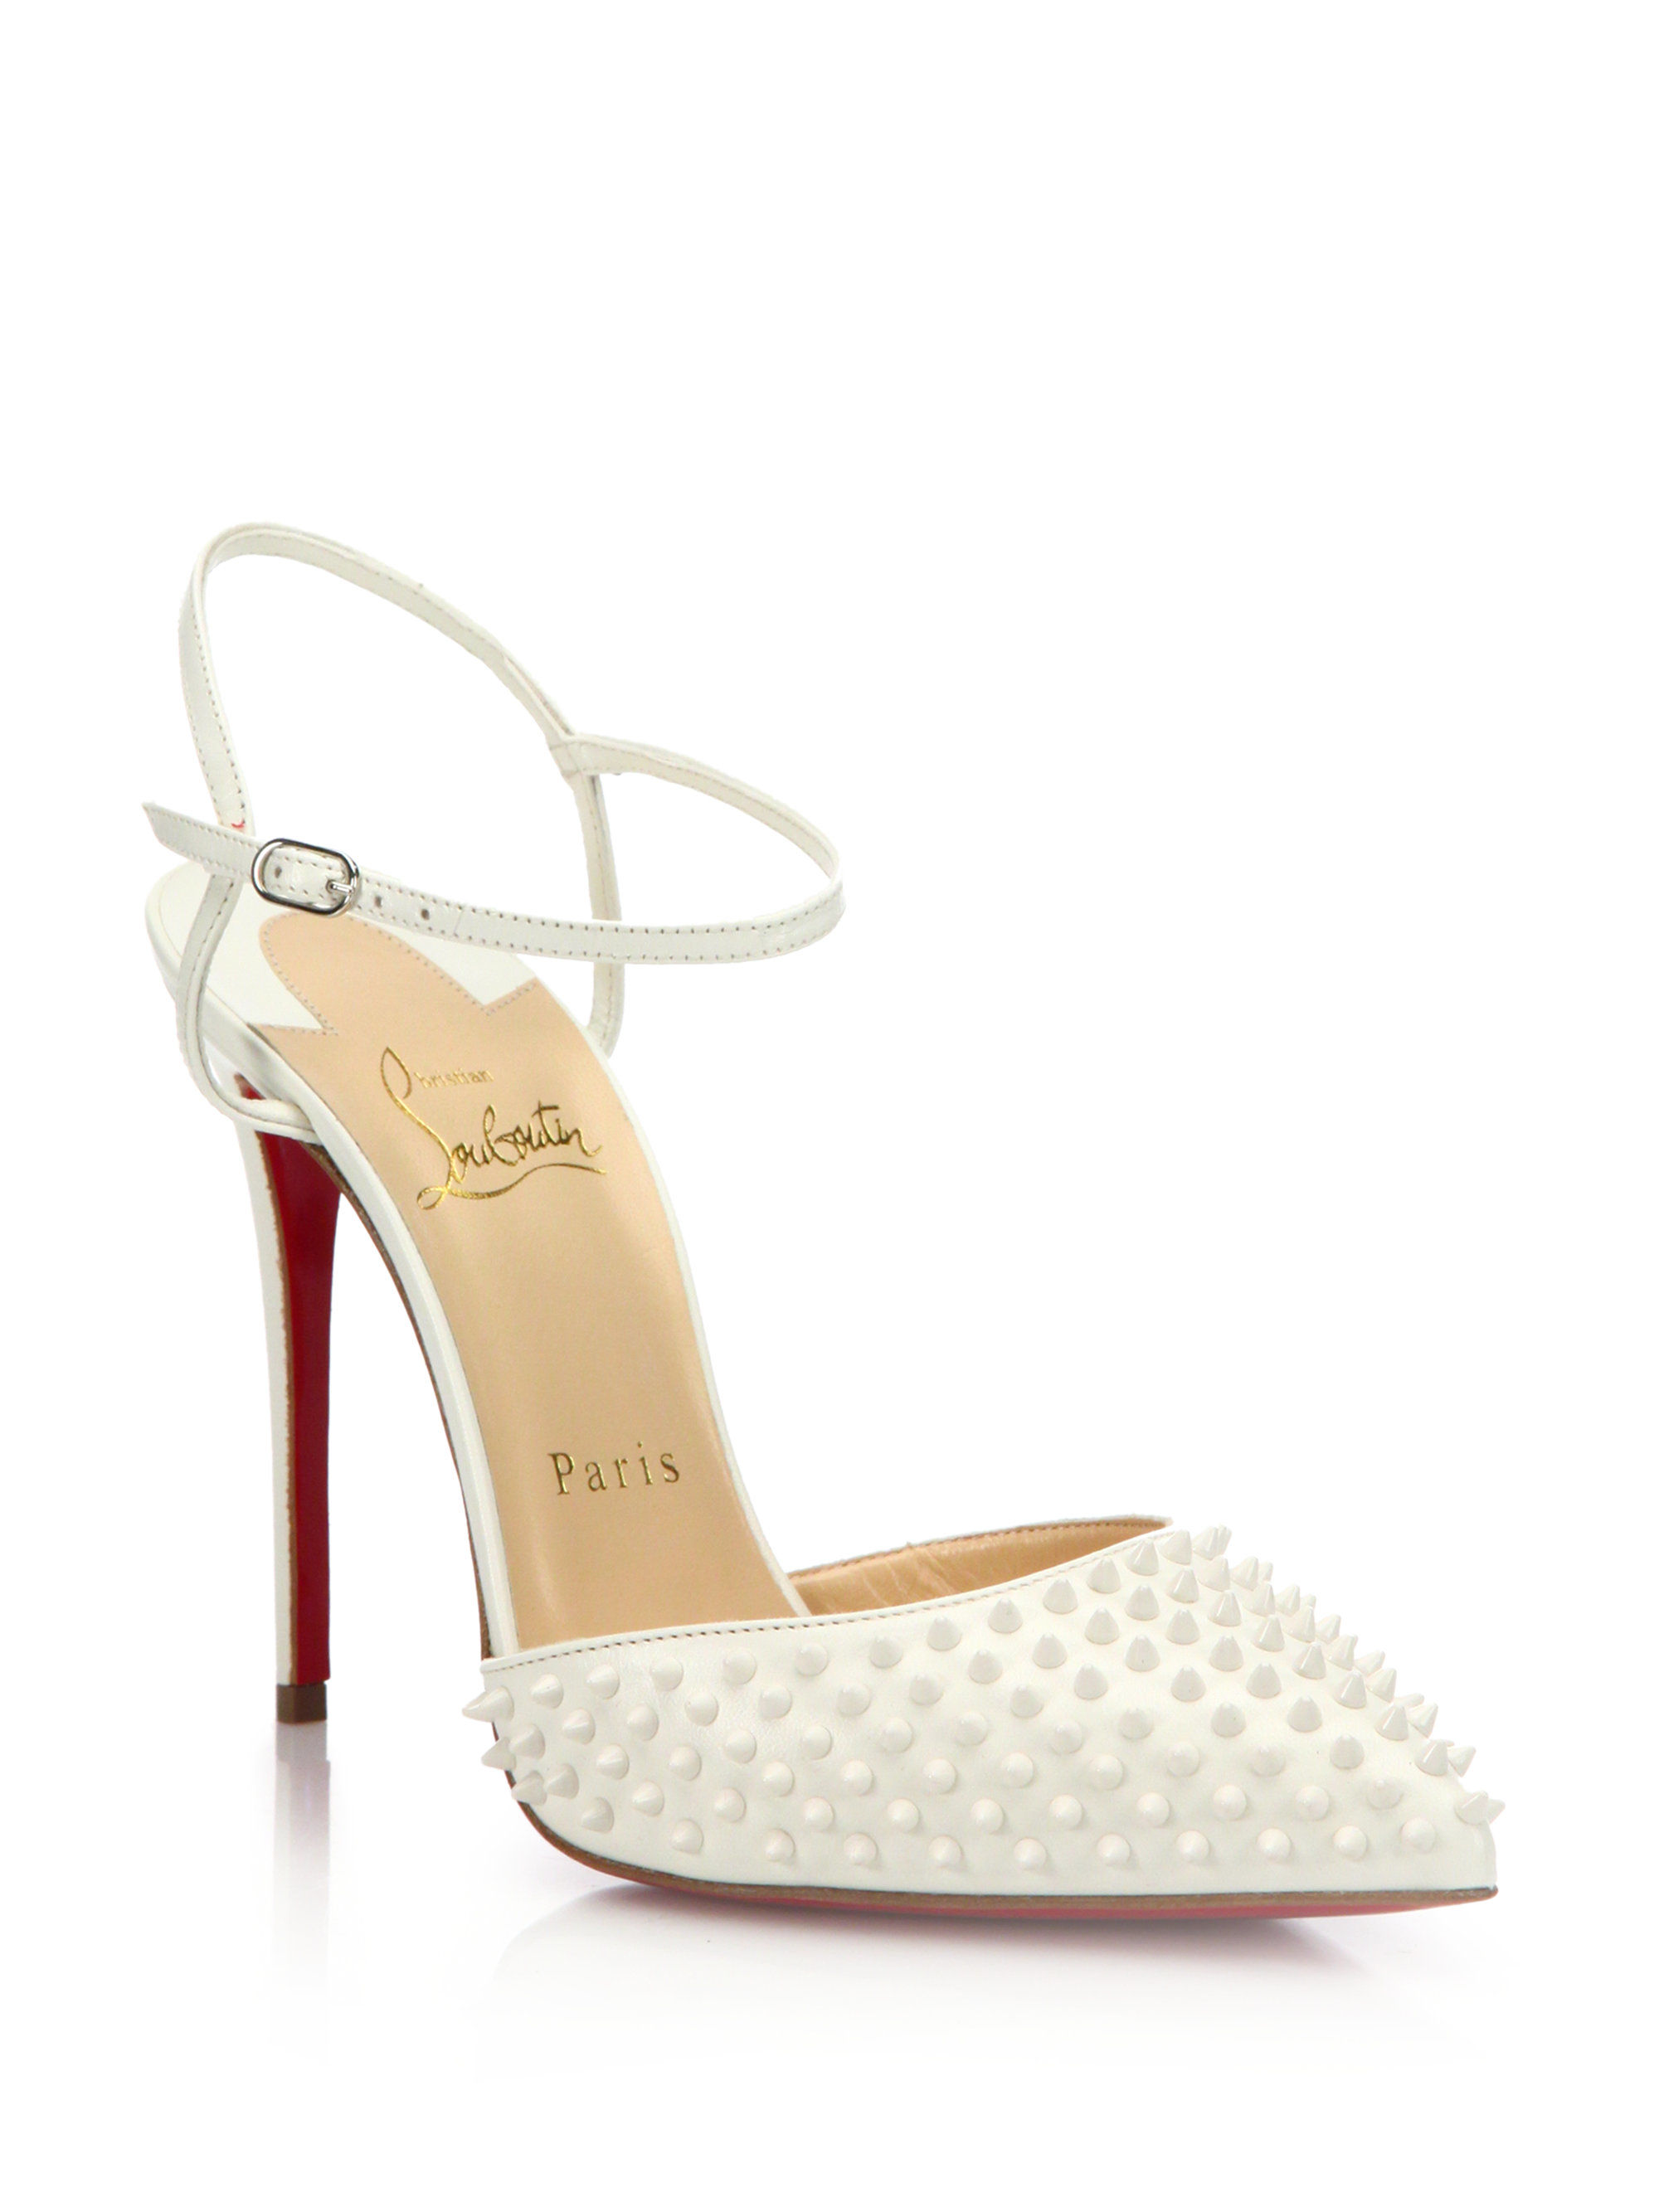 knock off mens shoes - Christian louboutin Baila Spiked Patent Leather Ankle-strap Pumps ...